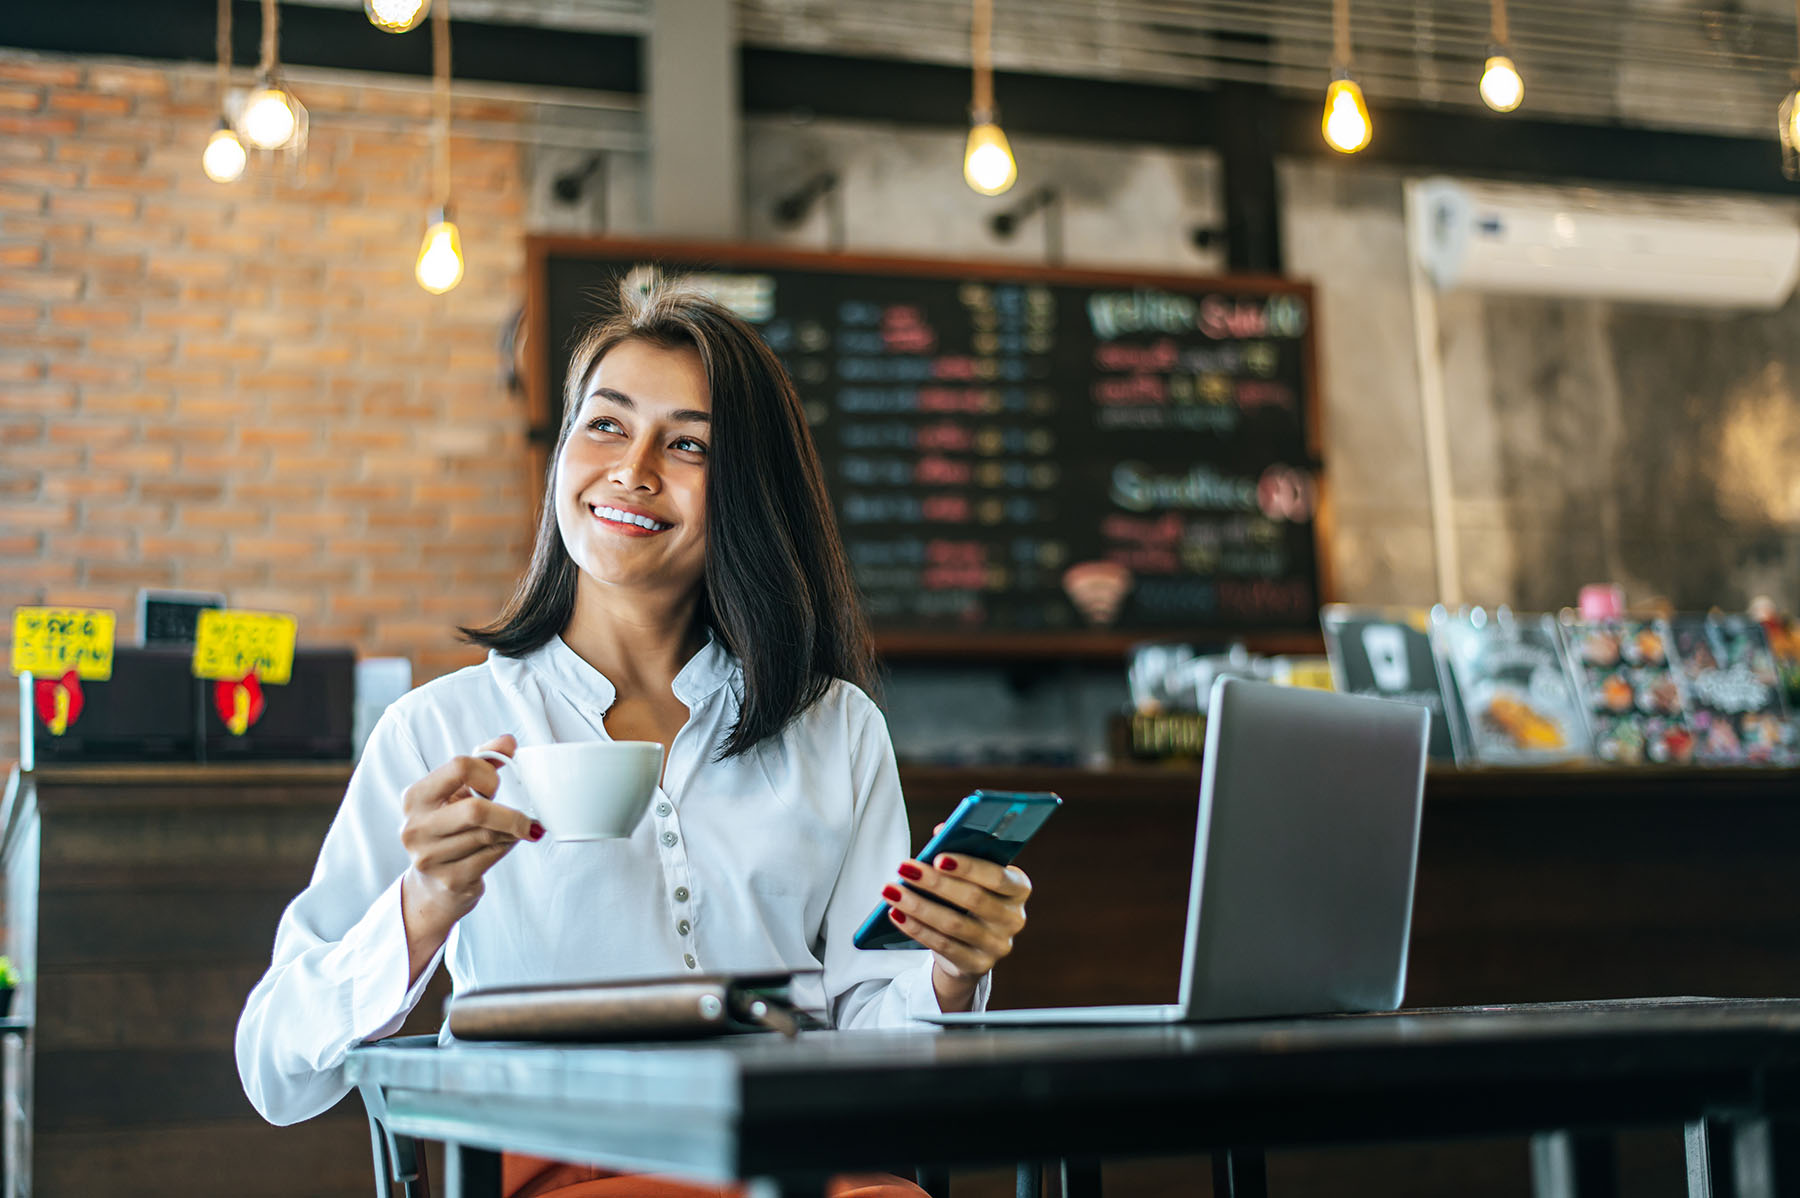 Woman Sitting Happily Working With A Smartphone In A Coffee Shop